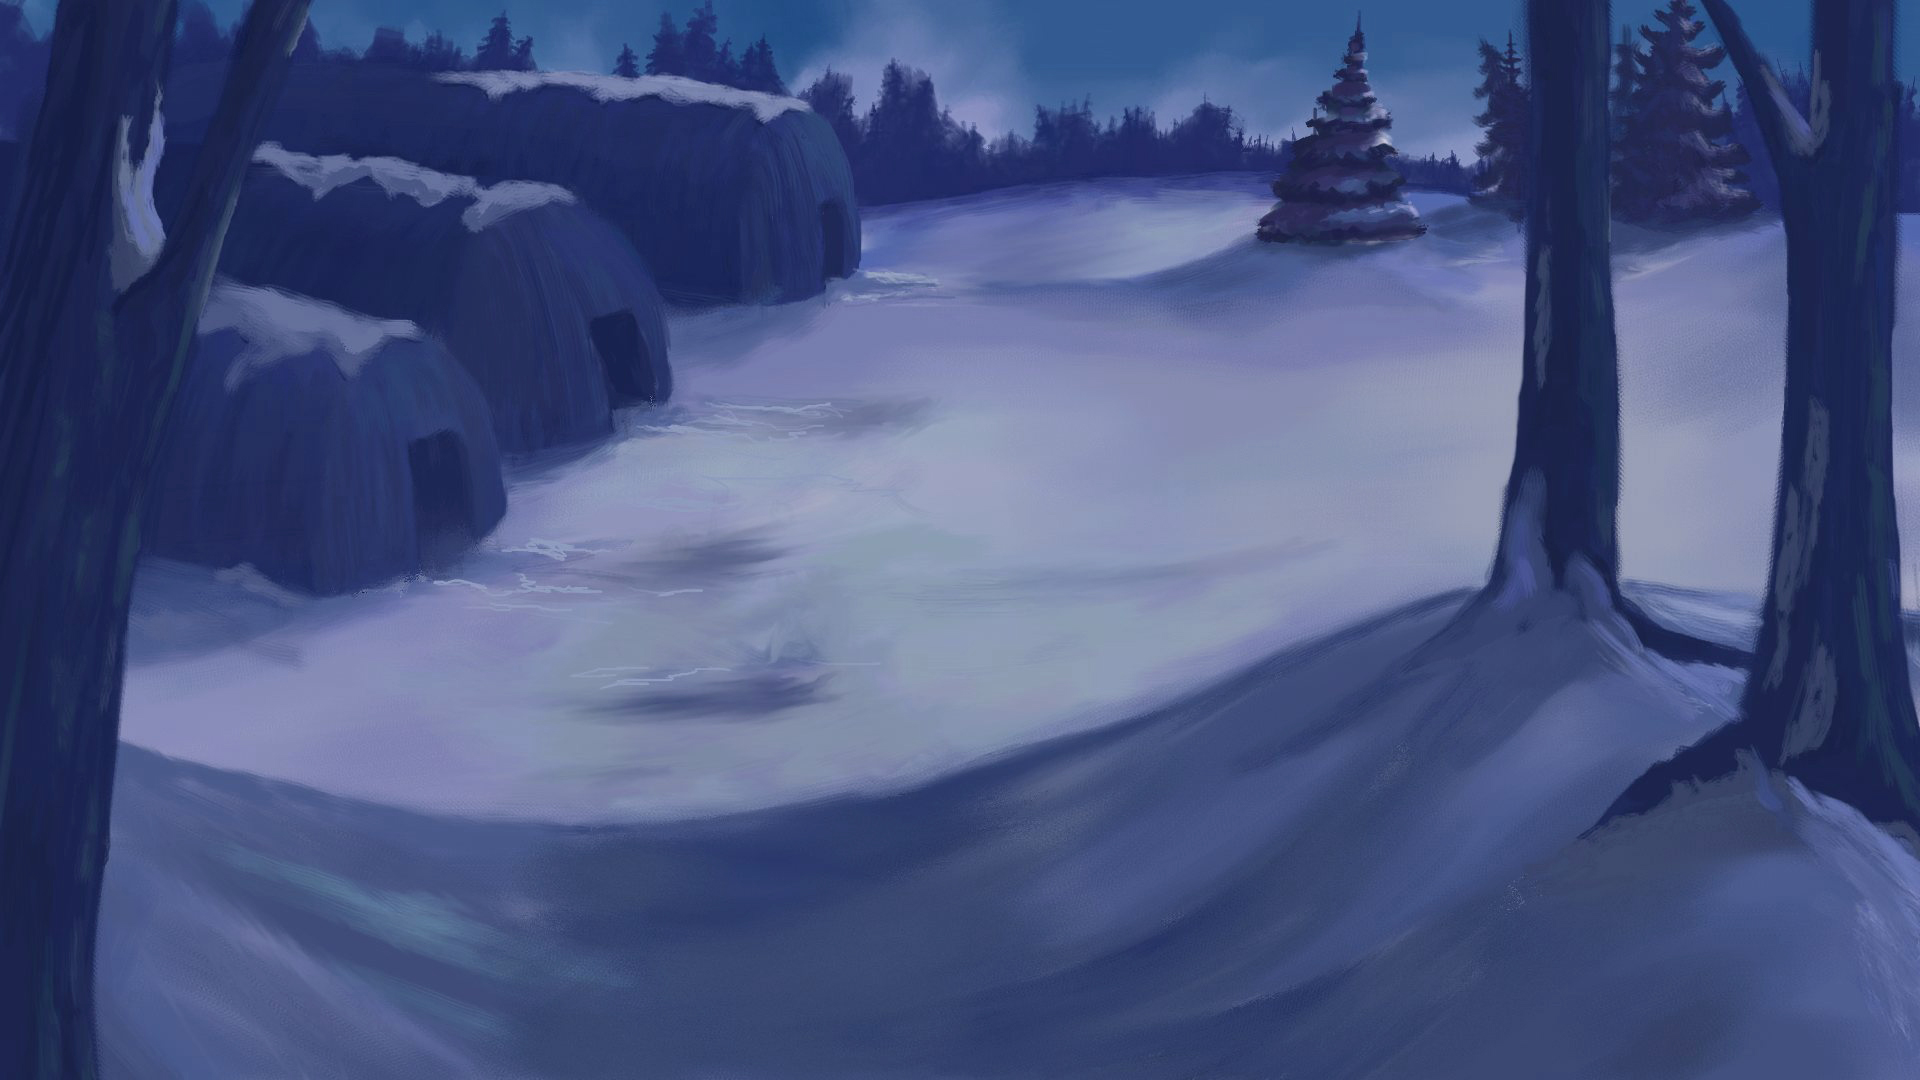 Animation background and overlay. Corel Painter.